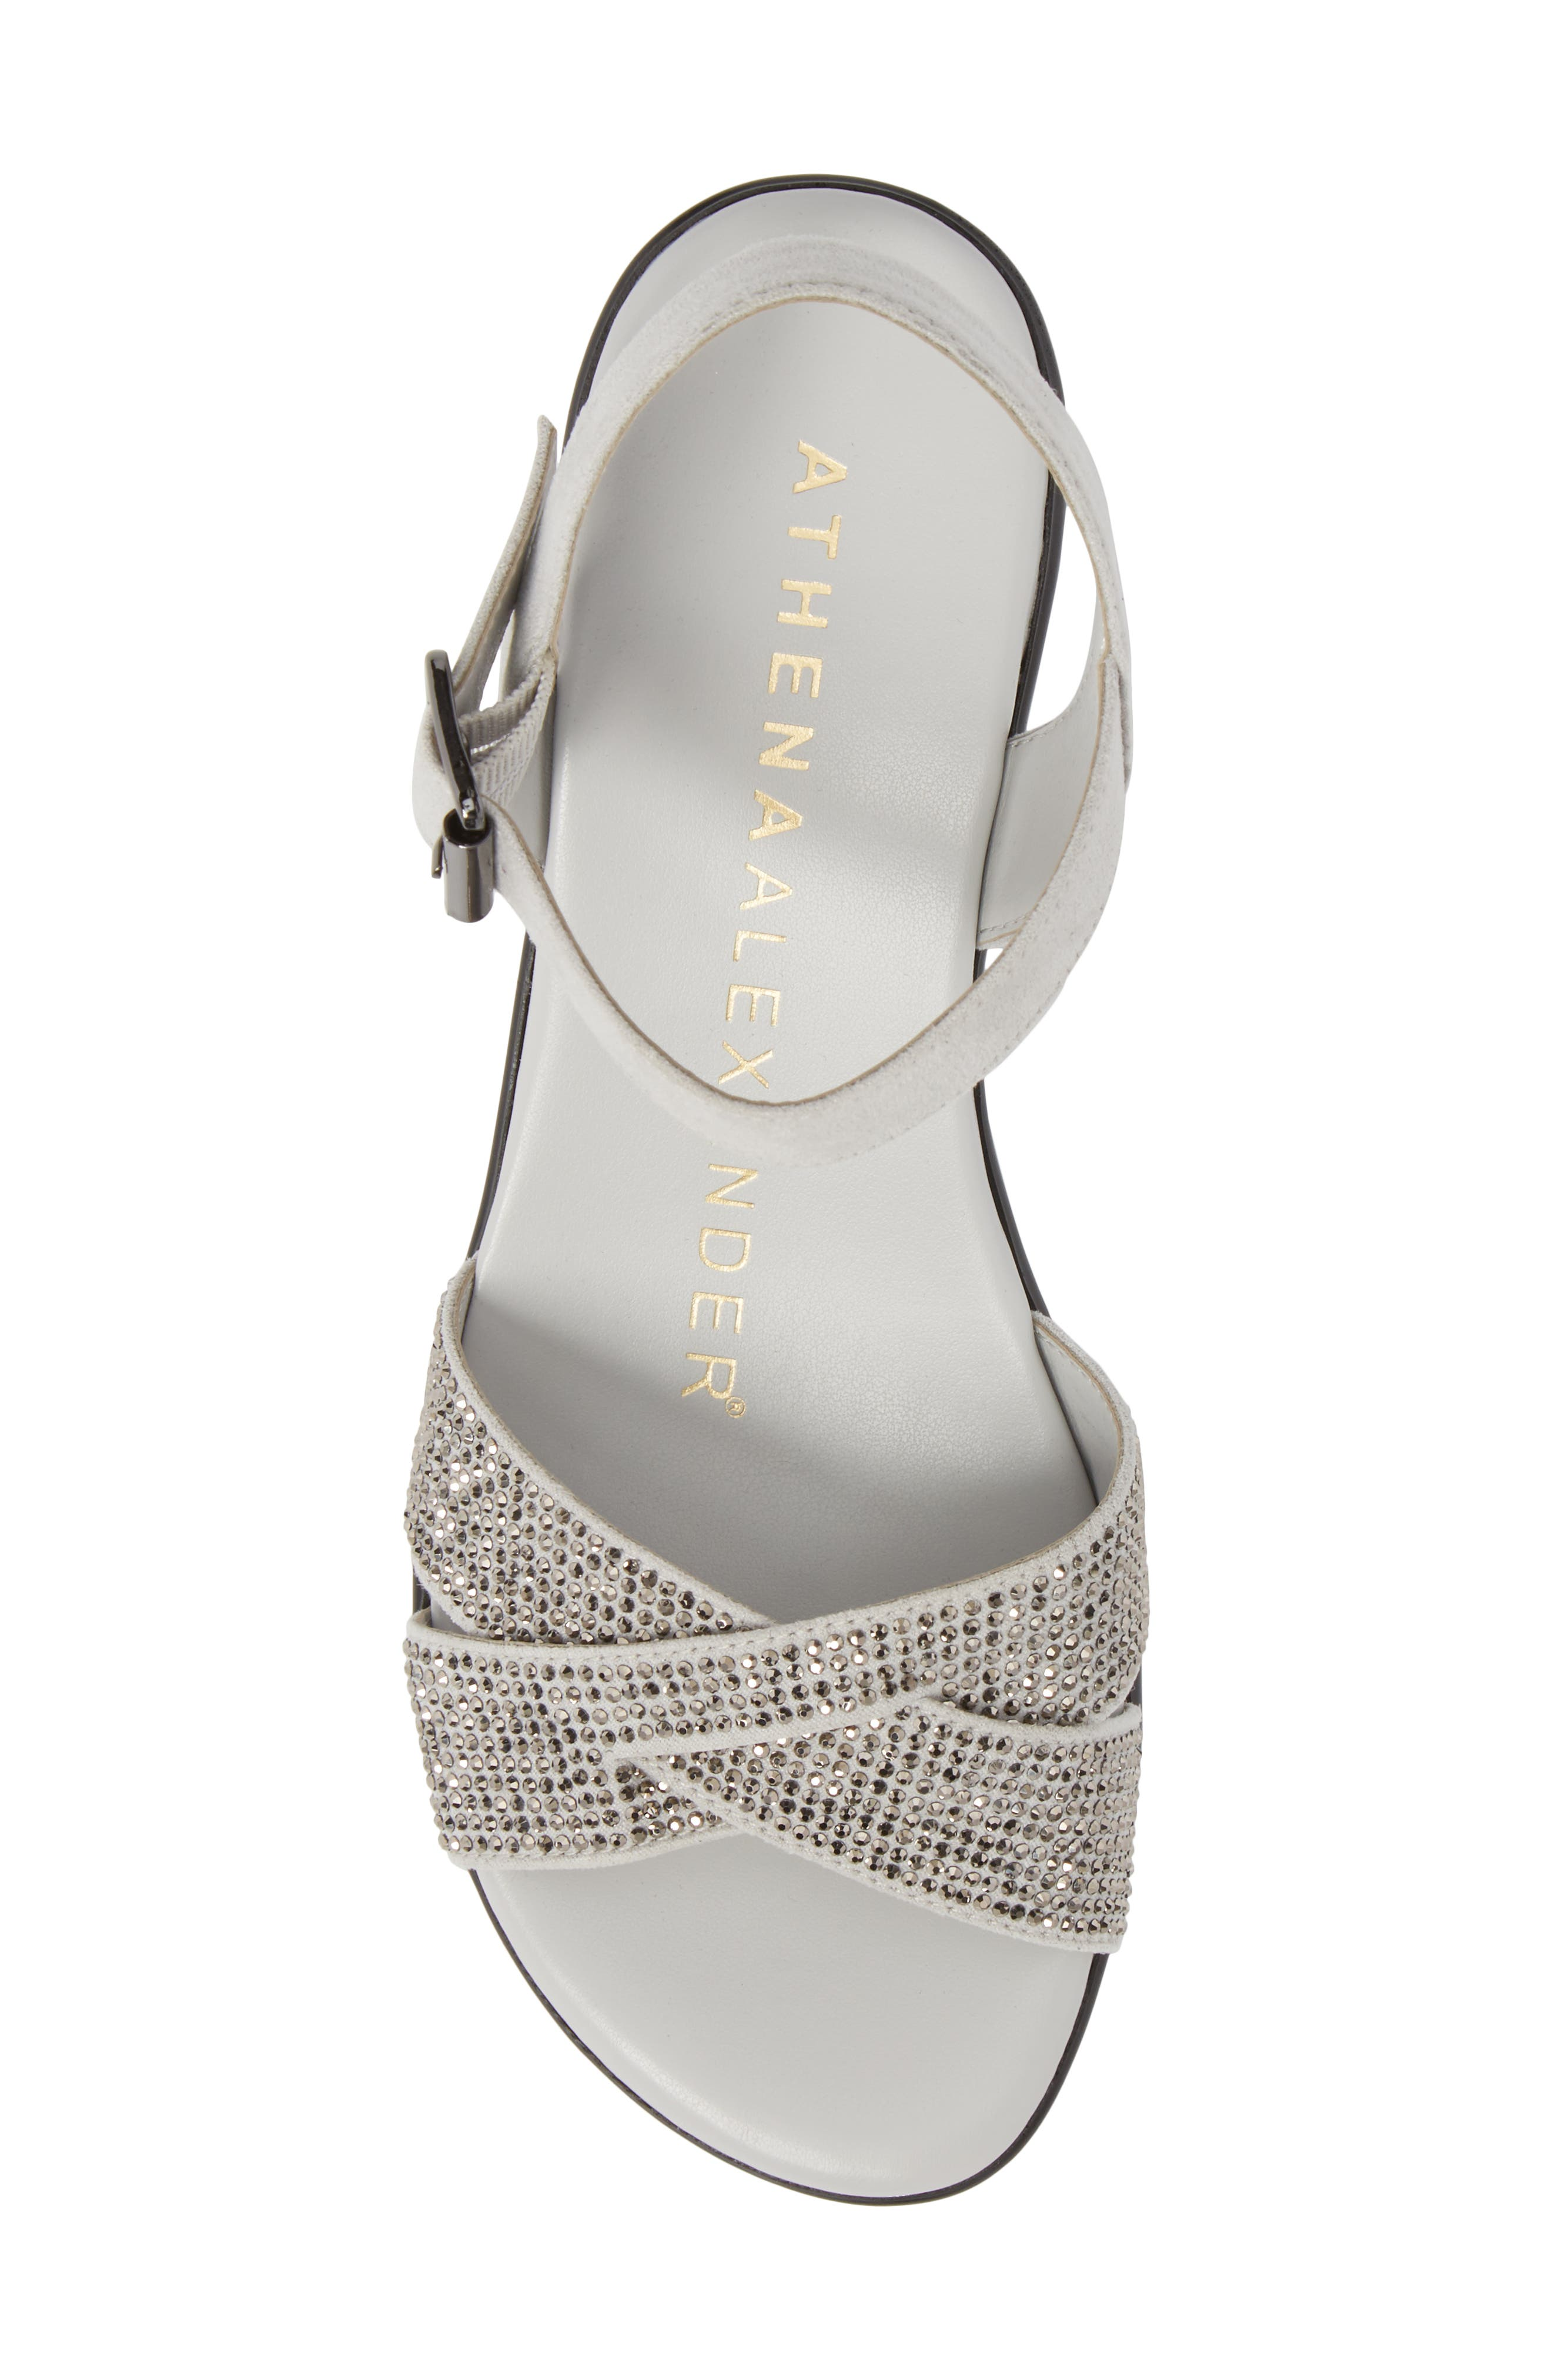 Florence Wedge Sandal,                             Alternate thumbnail 5, color,                             GREY FAUX SUEDE